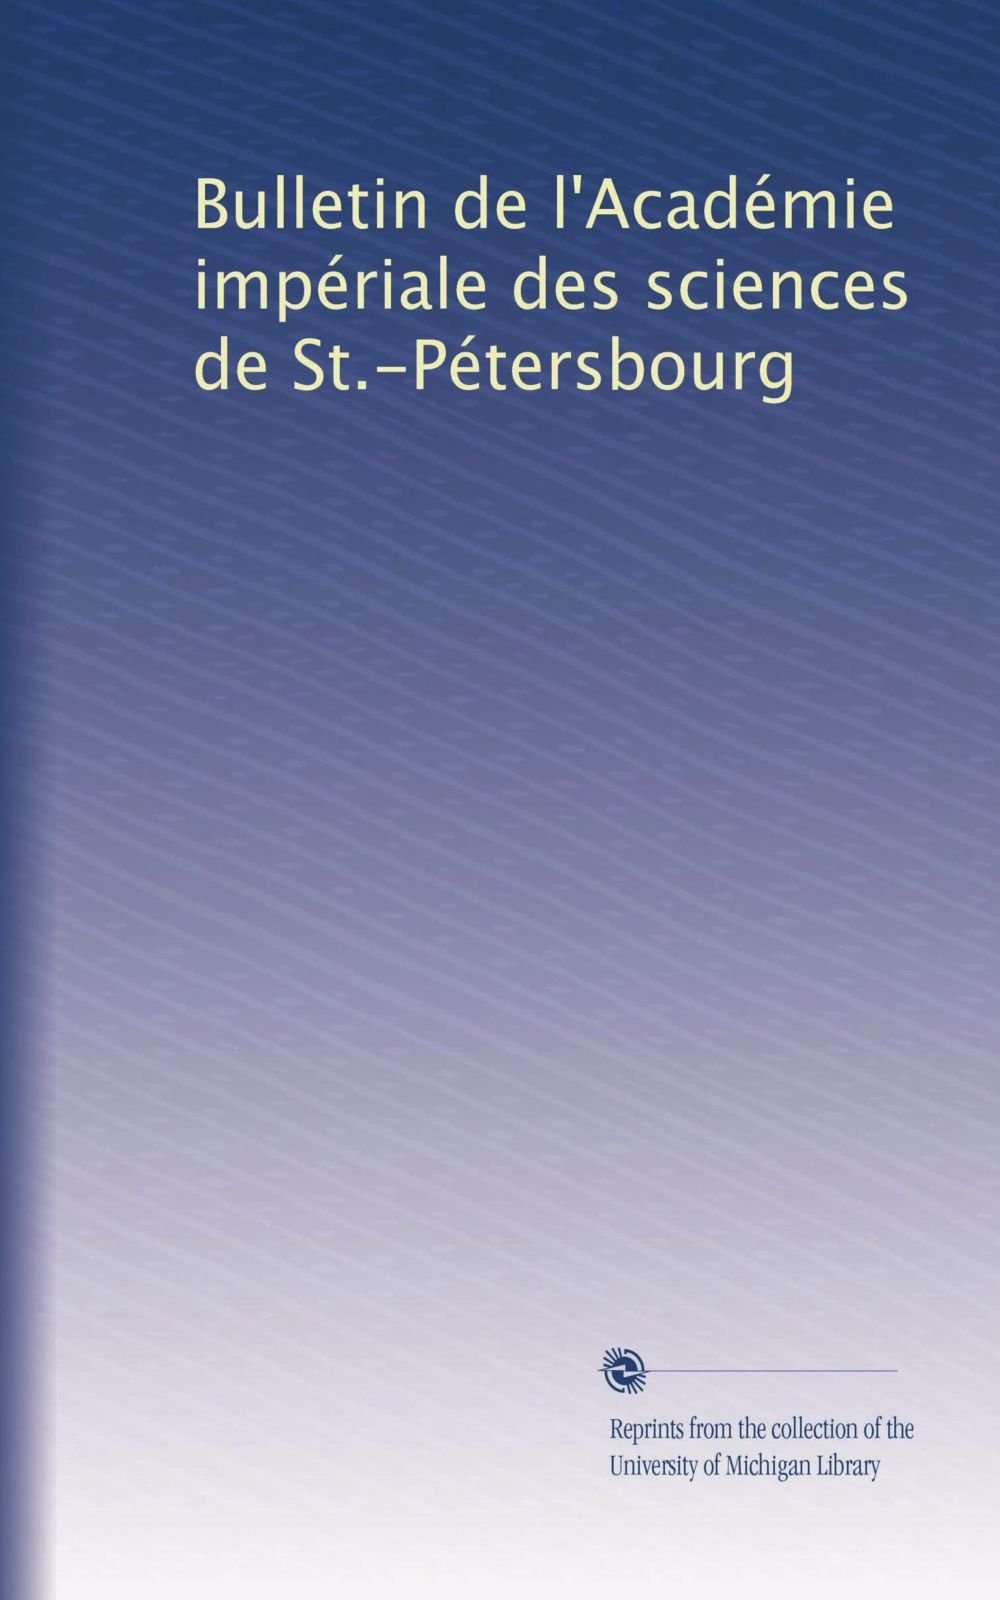 Download Bulletin de l'Académie impériale des sciences de St.-Pétersbourg (Volume 6) (French Edition) PDF